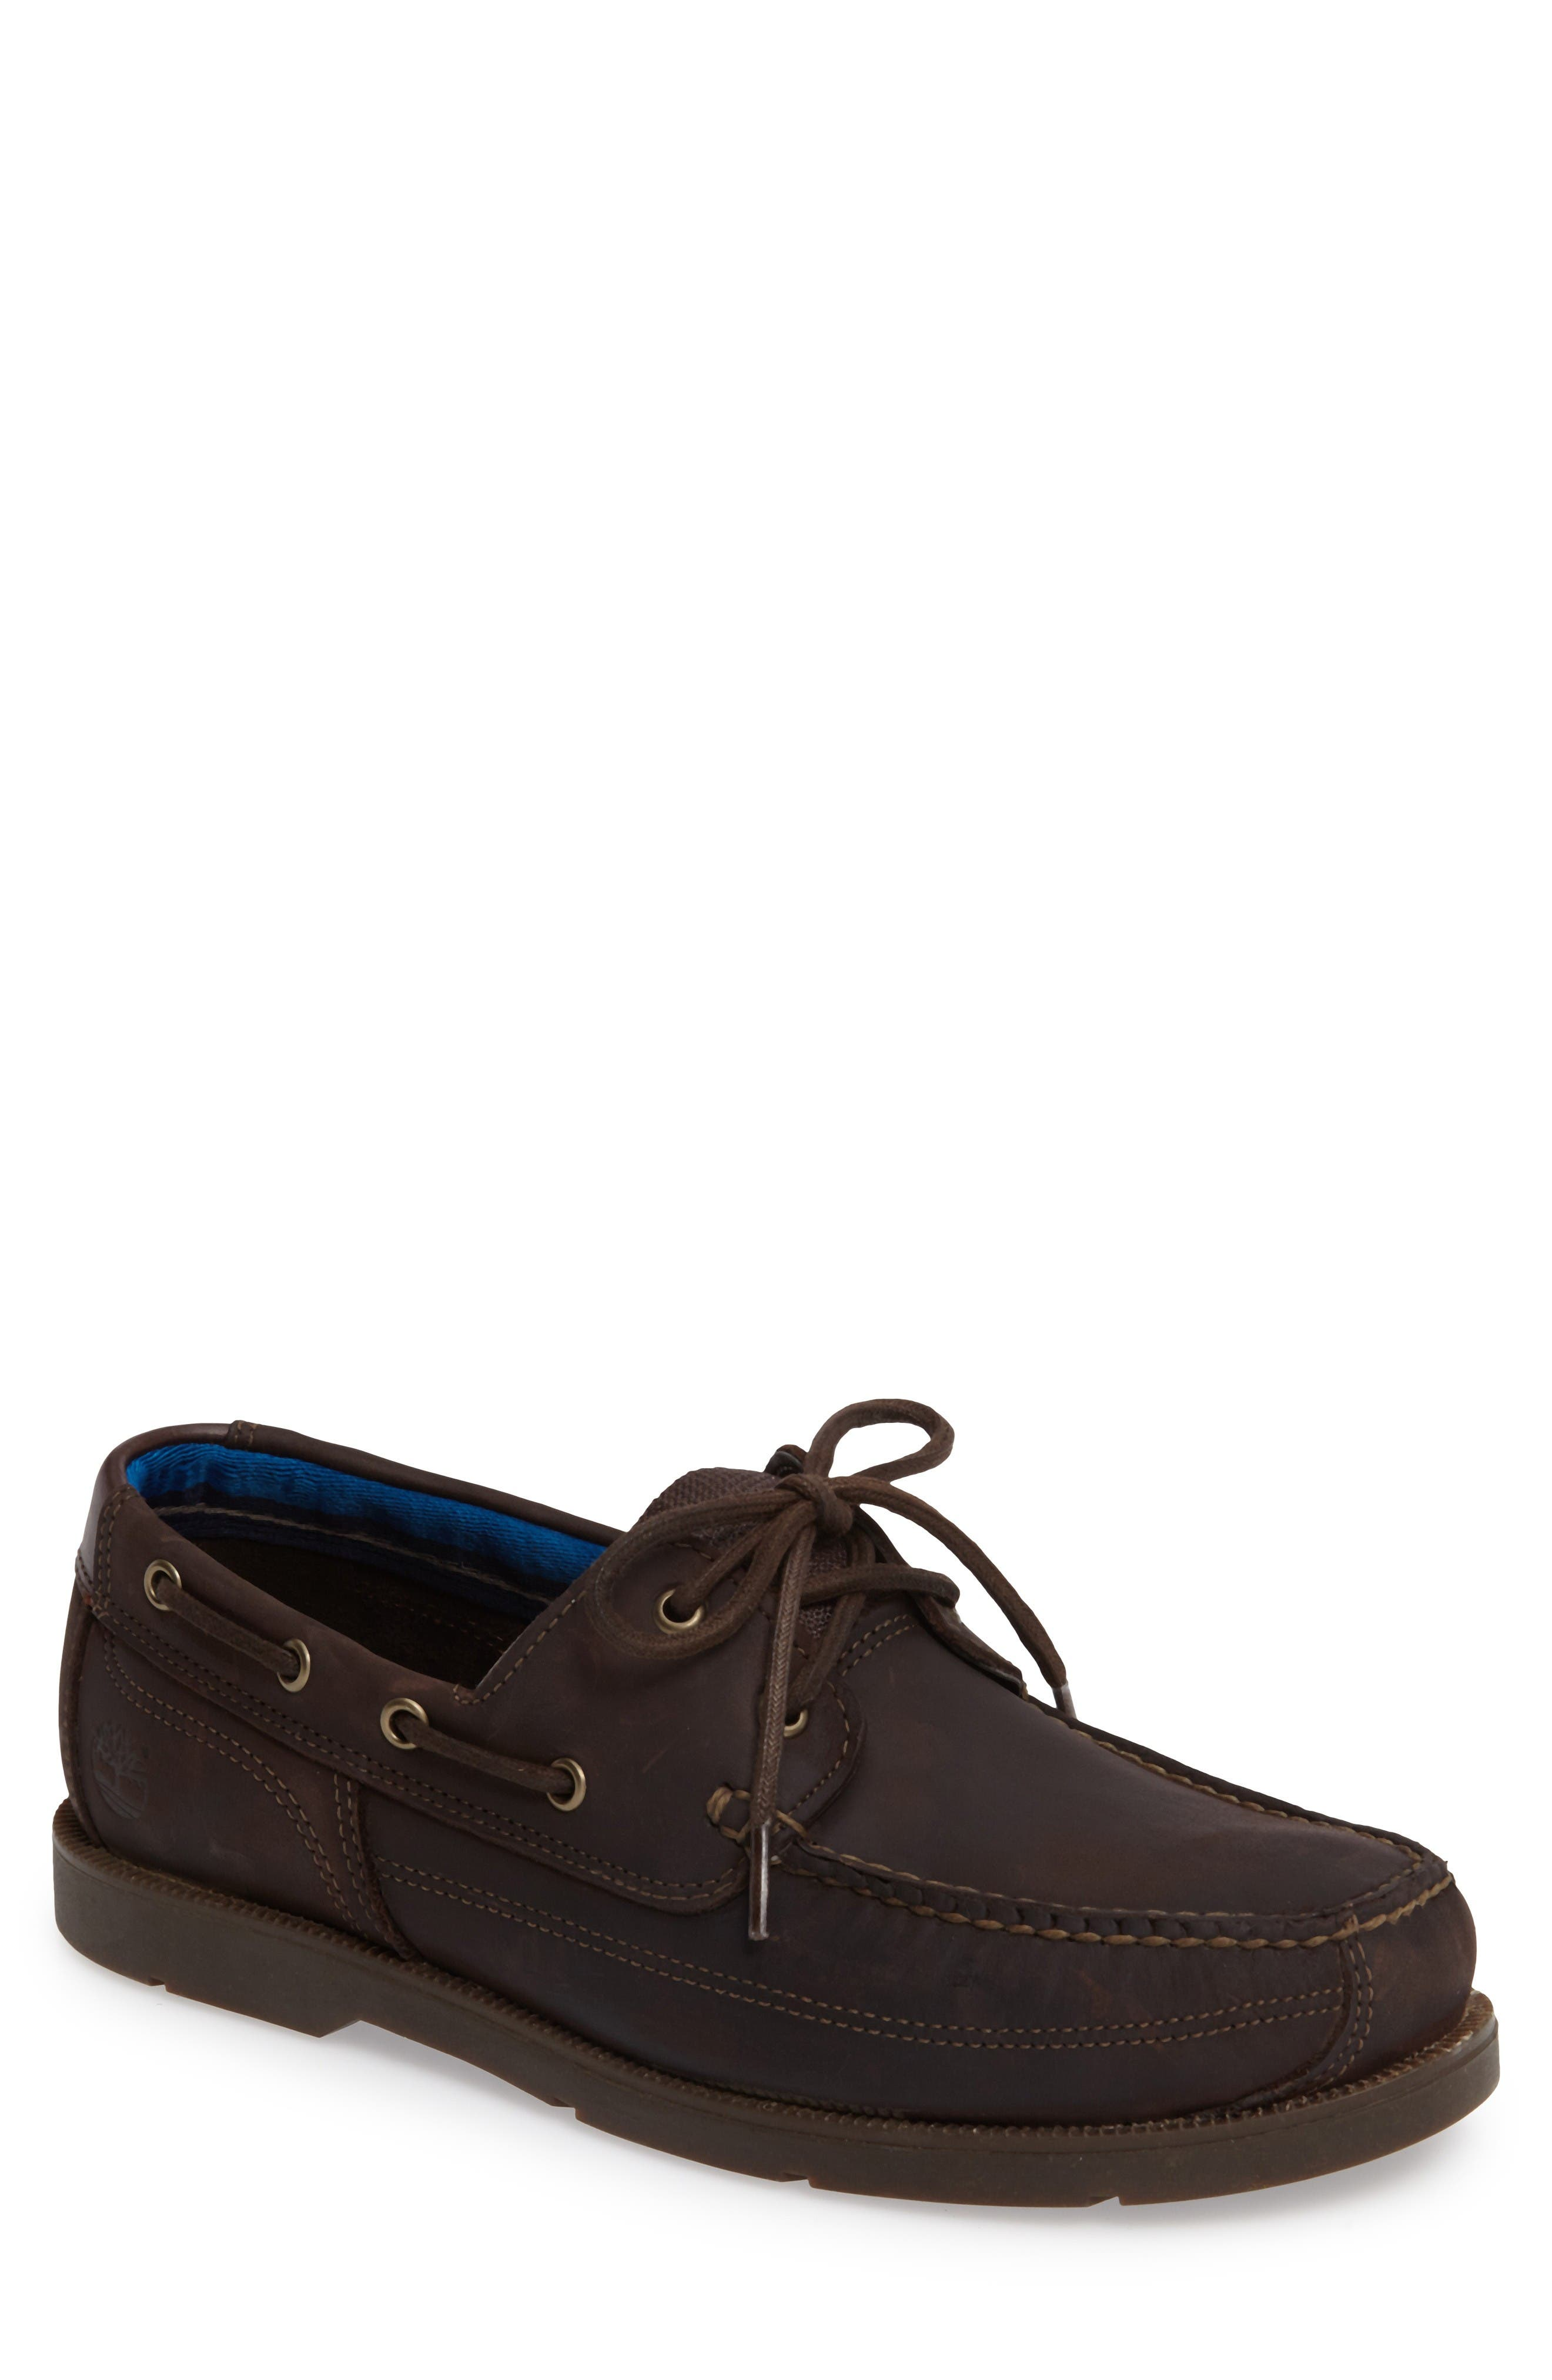 Piper Cove FG Boat Shoe,                         Main,                         color, Chocolate Leather